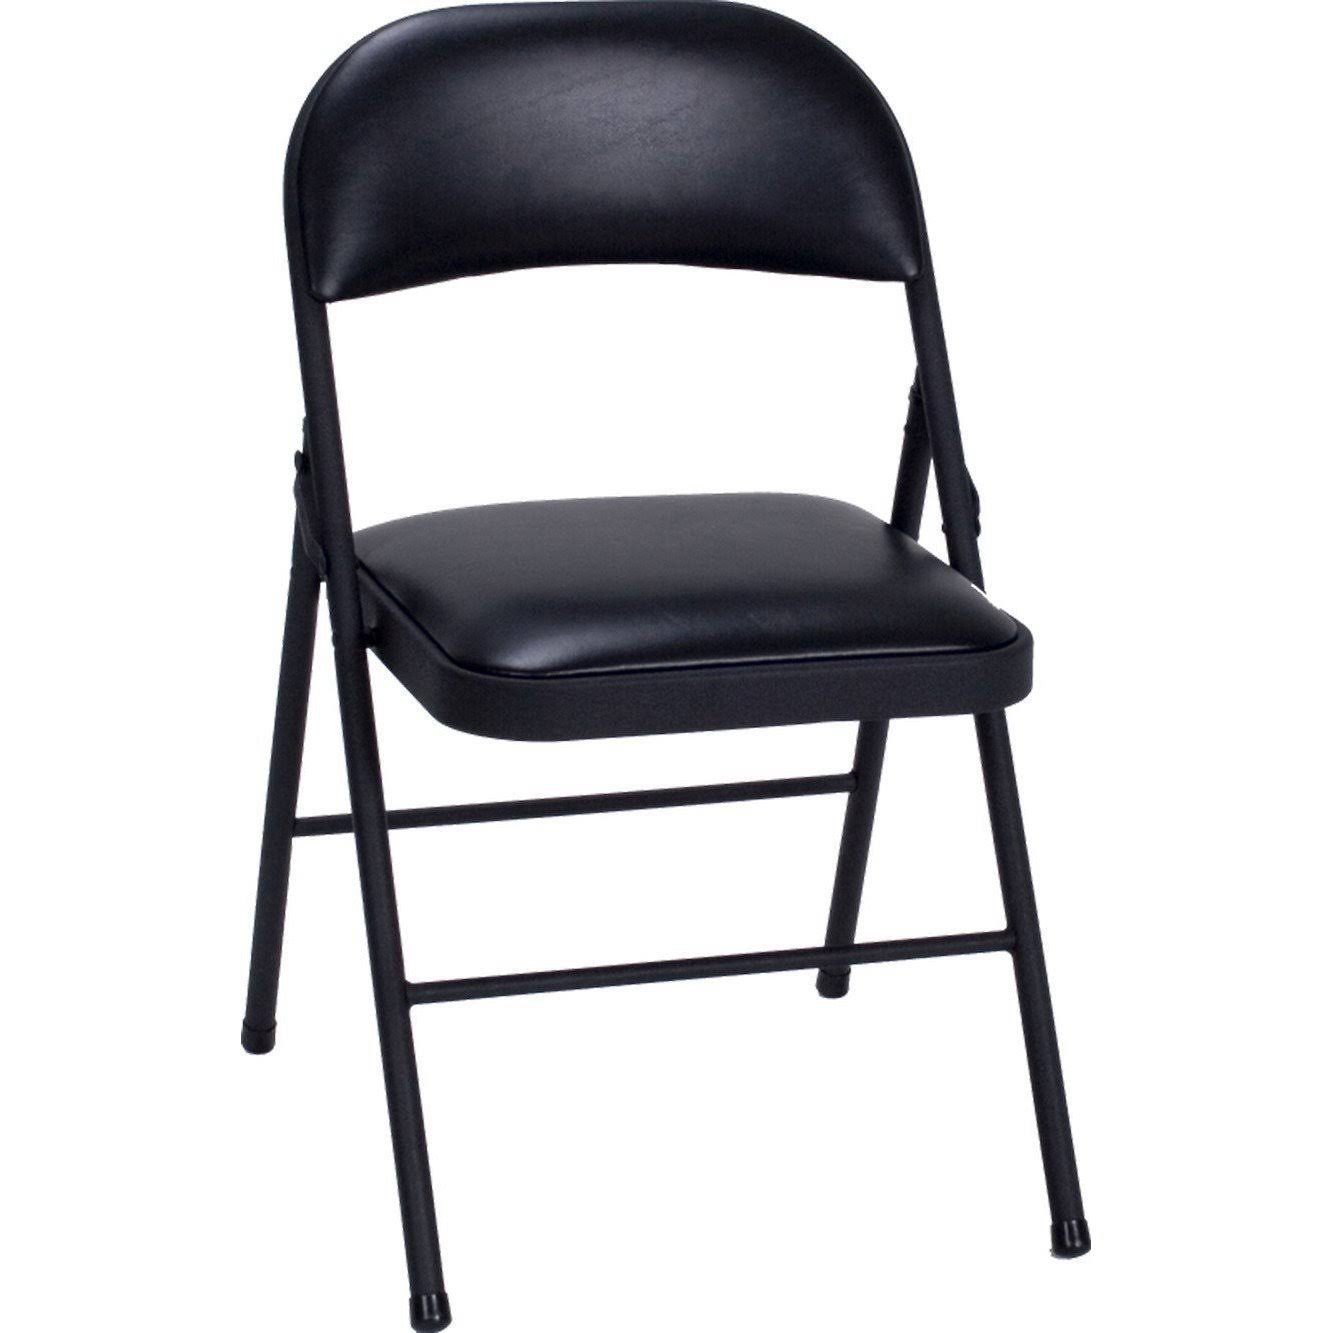 Cosco Vinyl Folding Chair - Black, 4 Pack